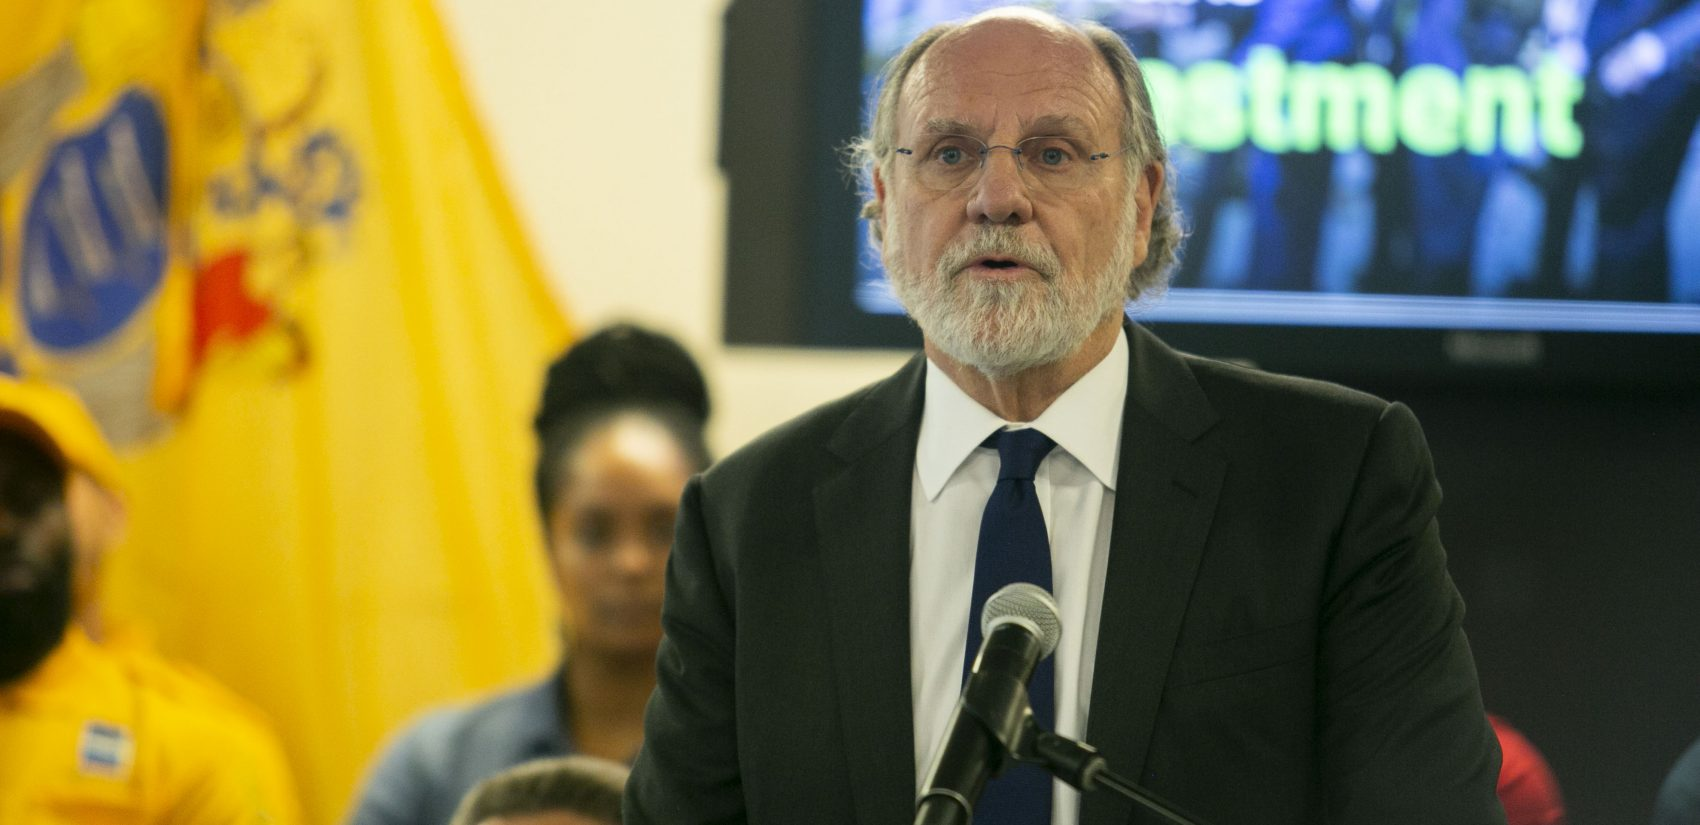 Former New Jersey Gov. Jon Corzine talks about the improvements in Camden Thursday. (Miguel Martinez/WHYY)